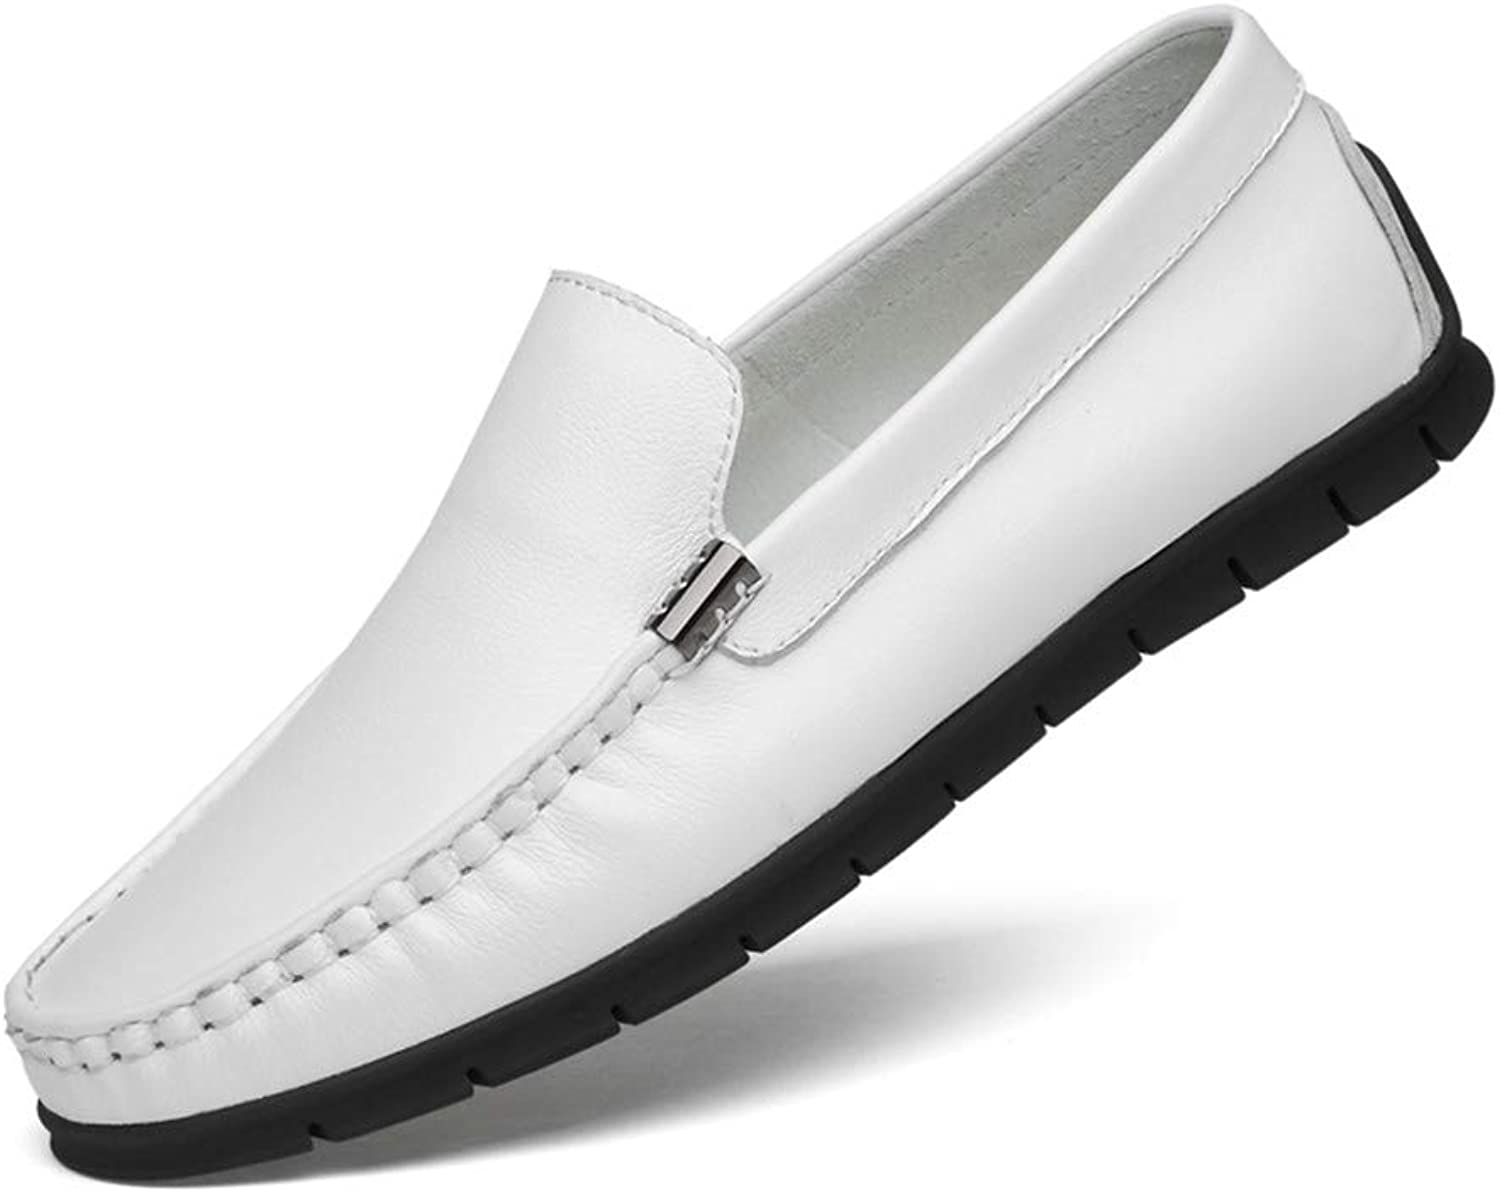 GPF-fei Men's shoe Leather Loafers shoes Lazy shoes Loafers & Slip-One Peas shoes Round toe shoe Comfortable Fashion Breathable Leisure,White,42